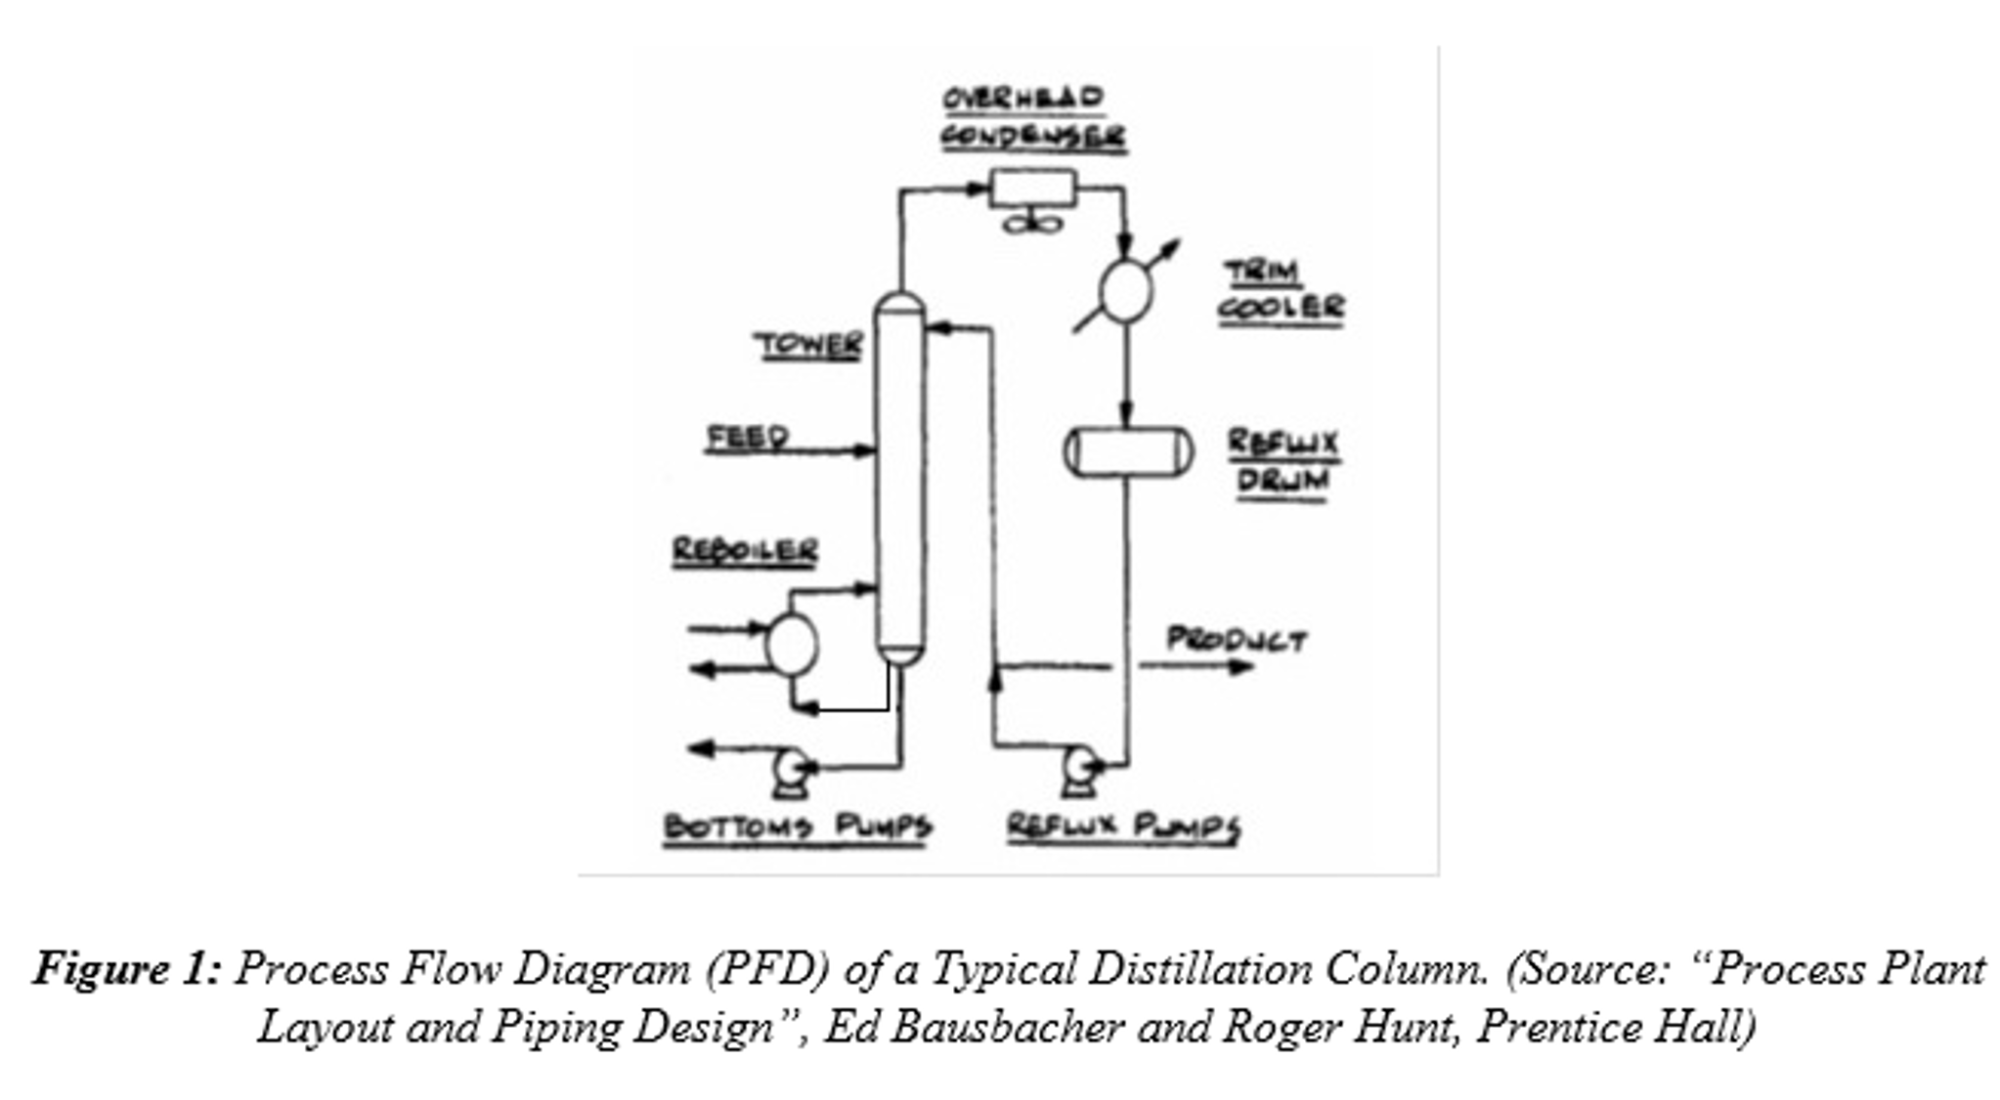 hight resolution of piping and instrumentation diagram jobs wiring diagrams konsult piping and instrumentation diagram job